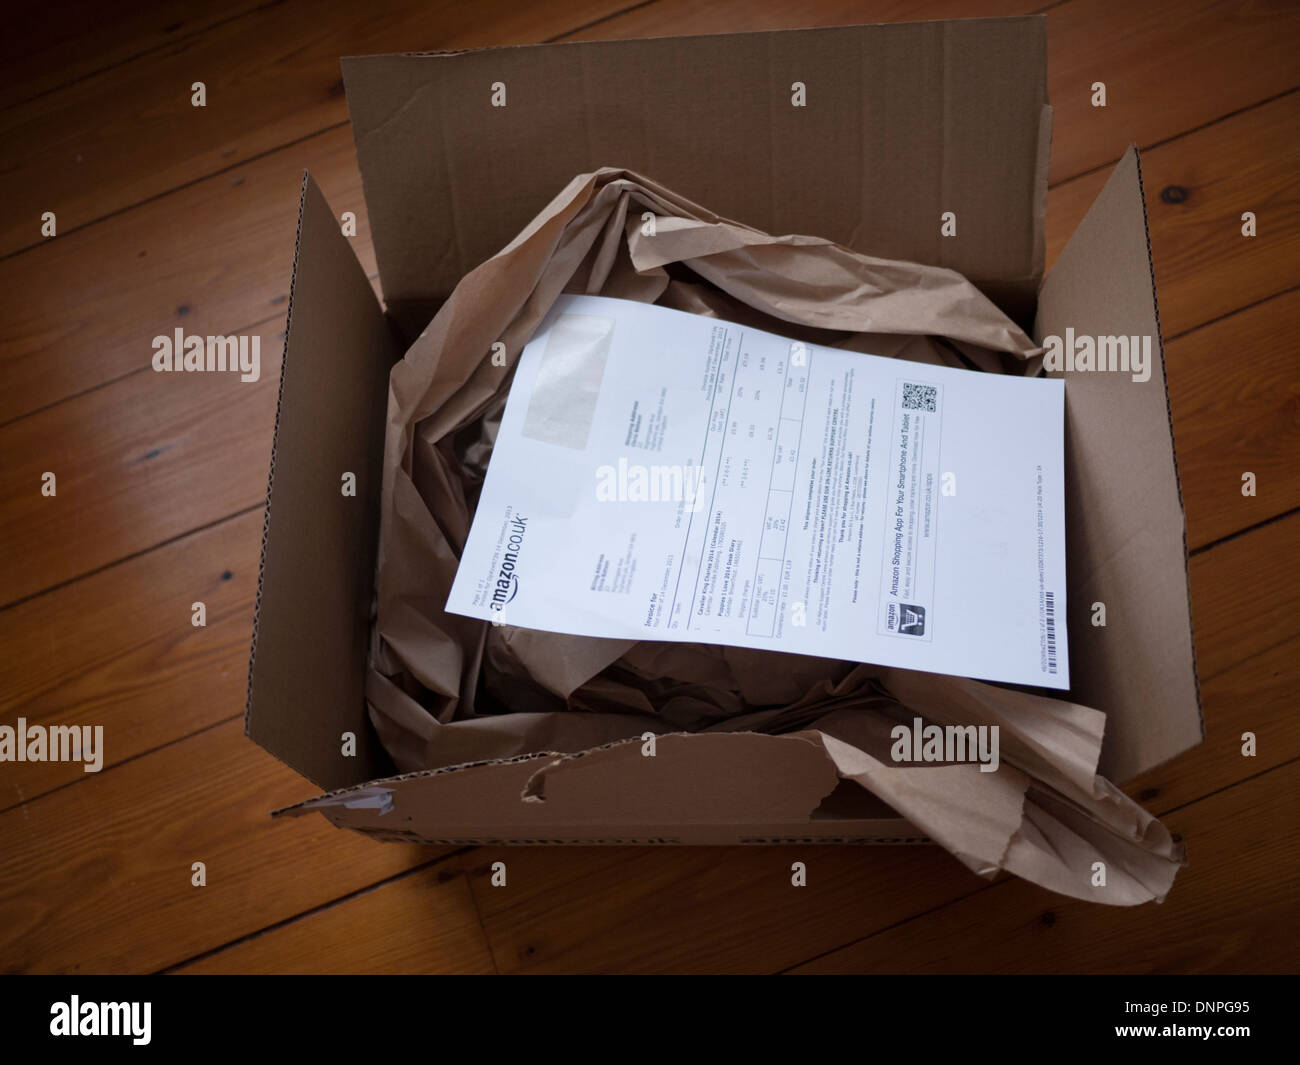 Amazon Box Open High Resolution Stock Photography And Images Alamy